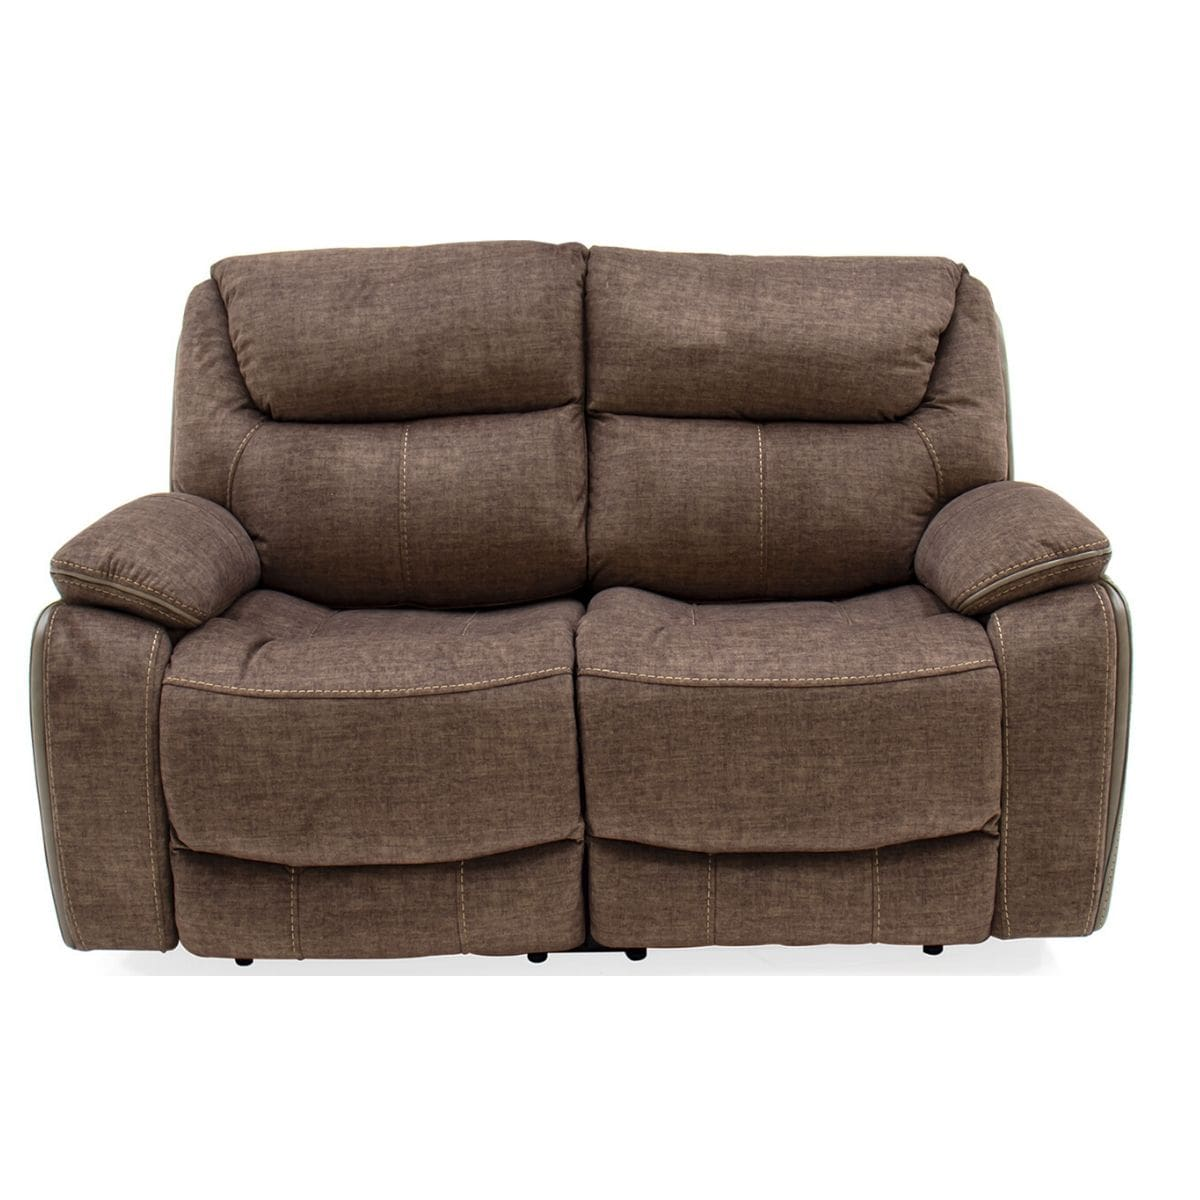 Stephanie 2 Seater Recliner